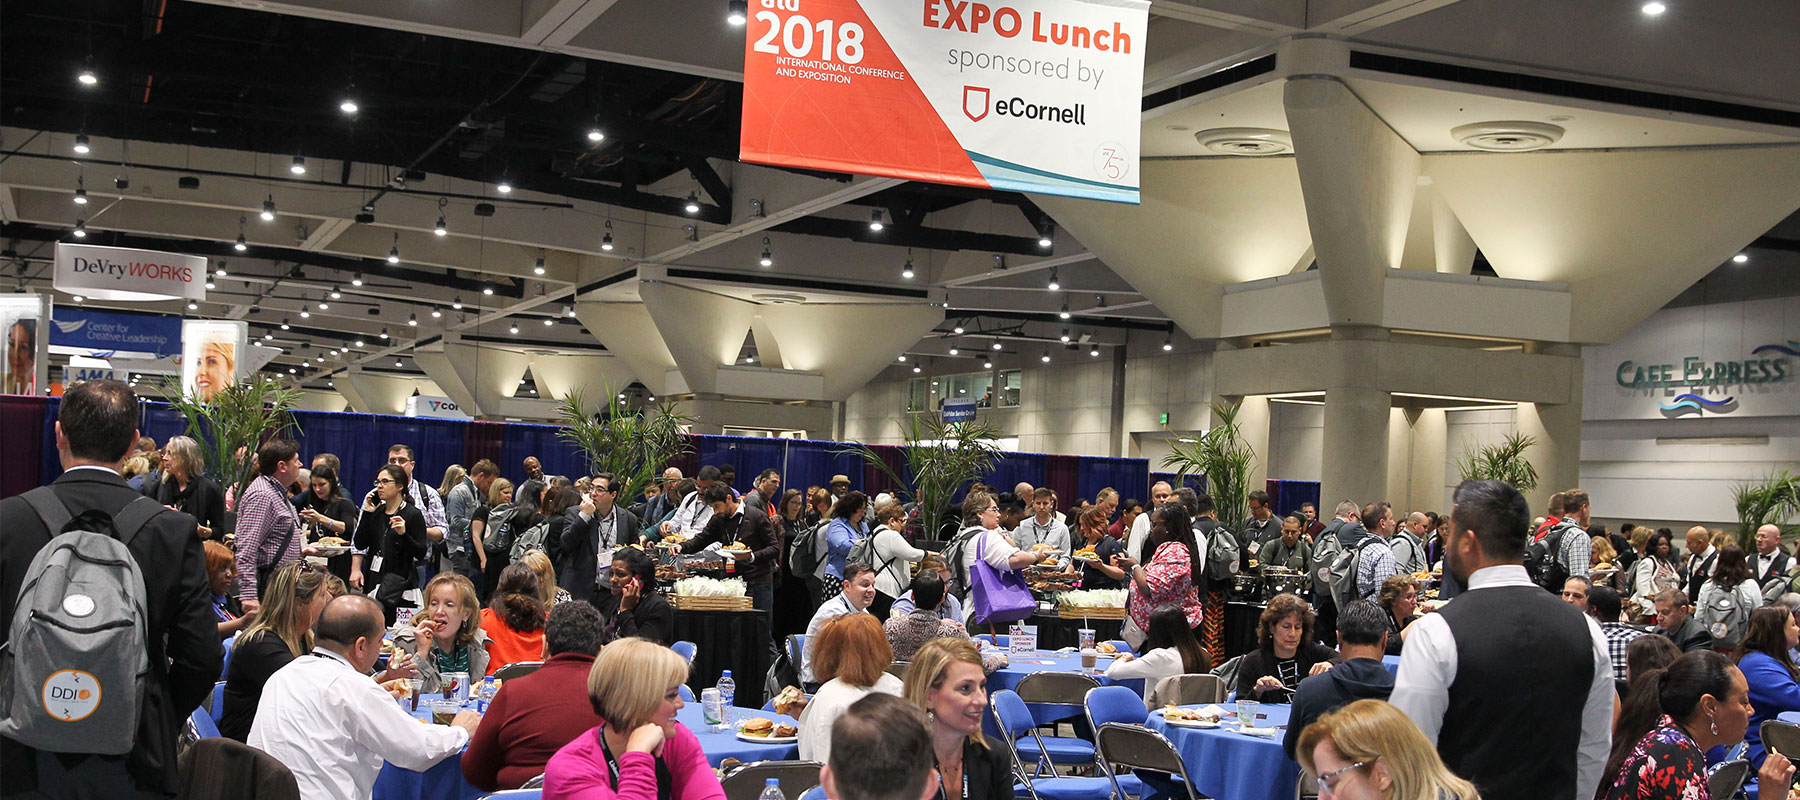 Expo-Lunch_1_1800x800.jpg